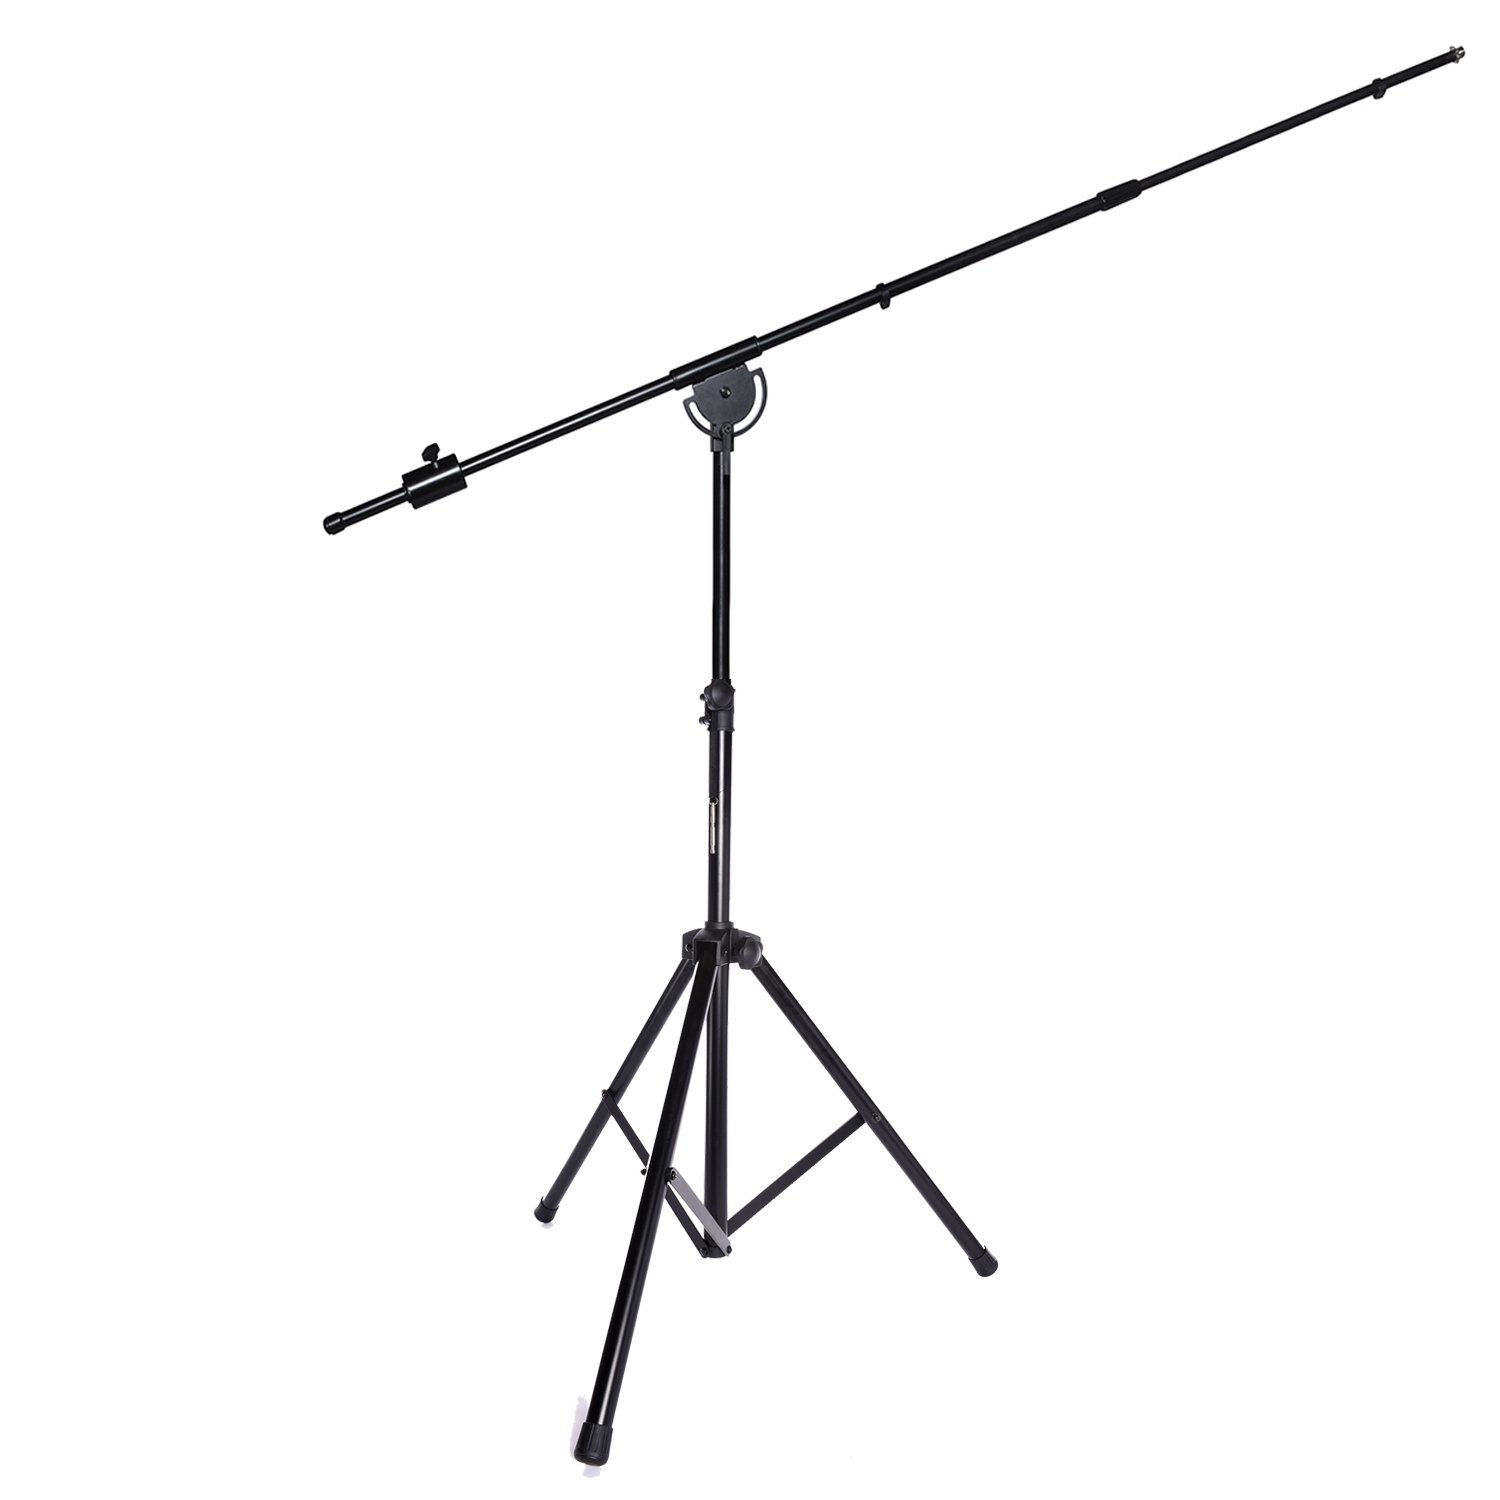 LyxPro SMT-1 Professional Microphone Stand Heavy Duty 93'' Studio Overhead Boom Stand 76'' Extra Long Telescoping Arm Mount, Foldable Tripod Legs & Adjustable Counterweight by LyxPro